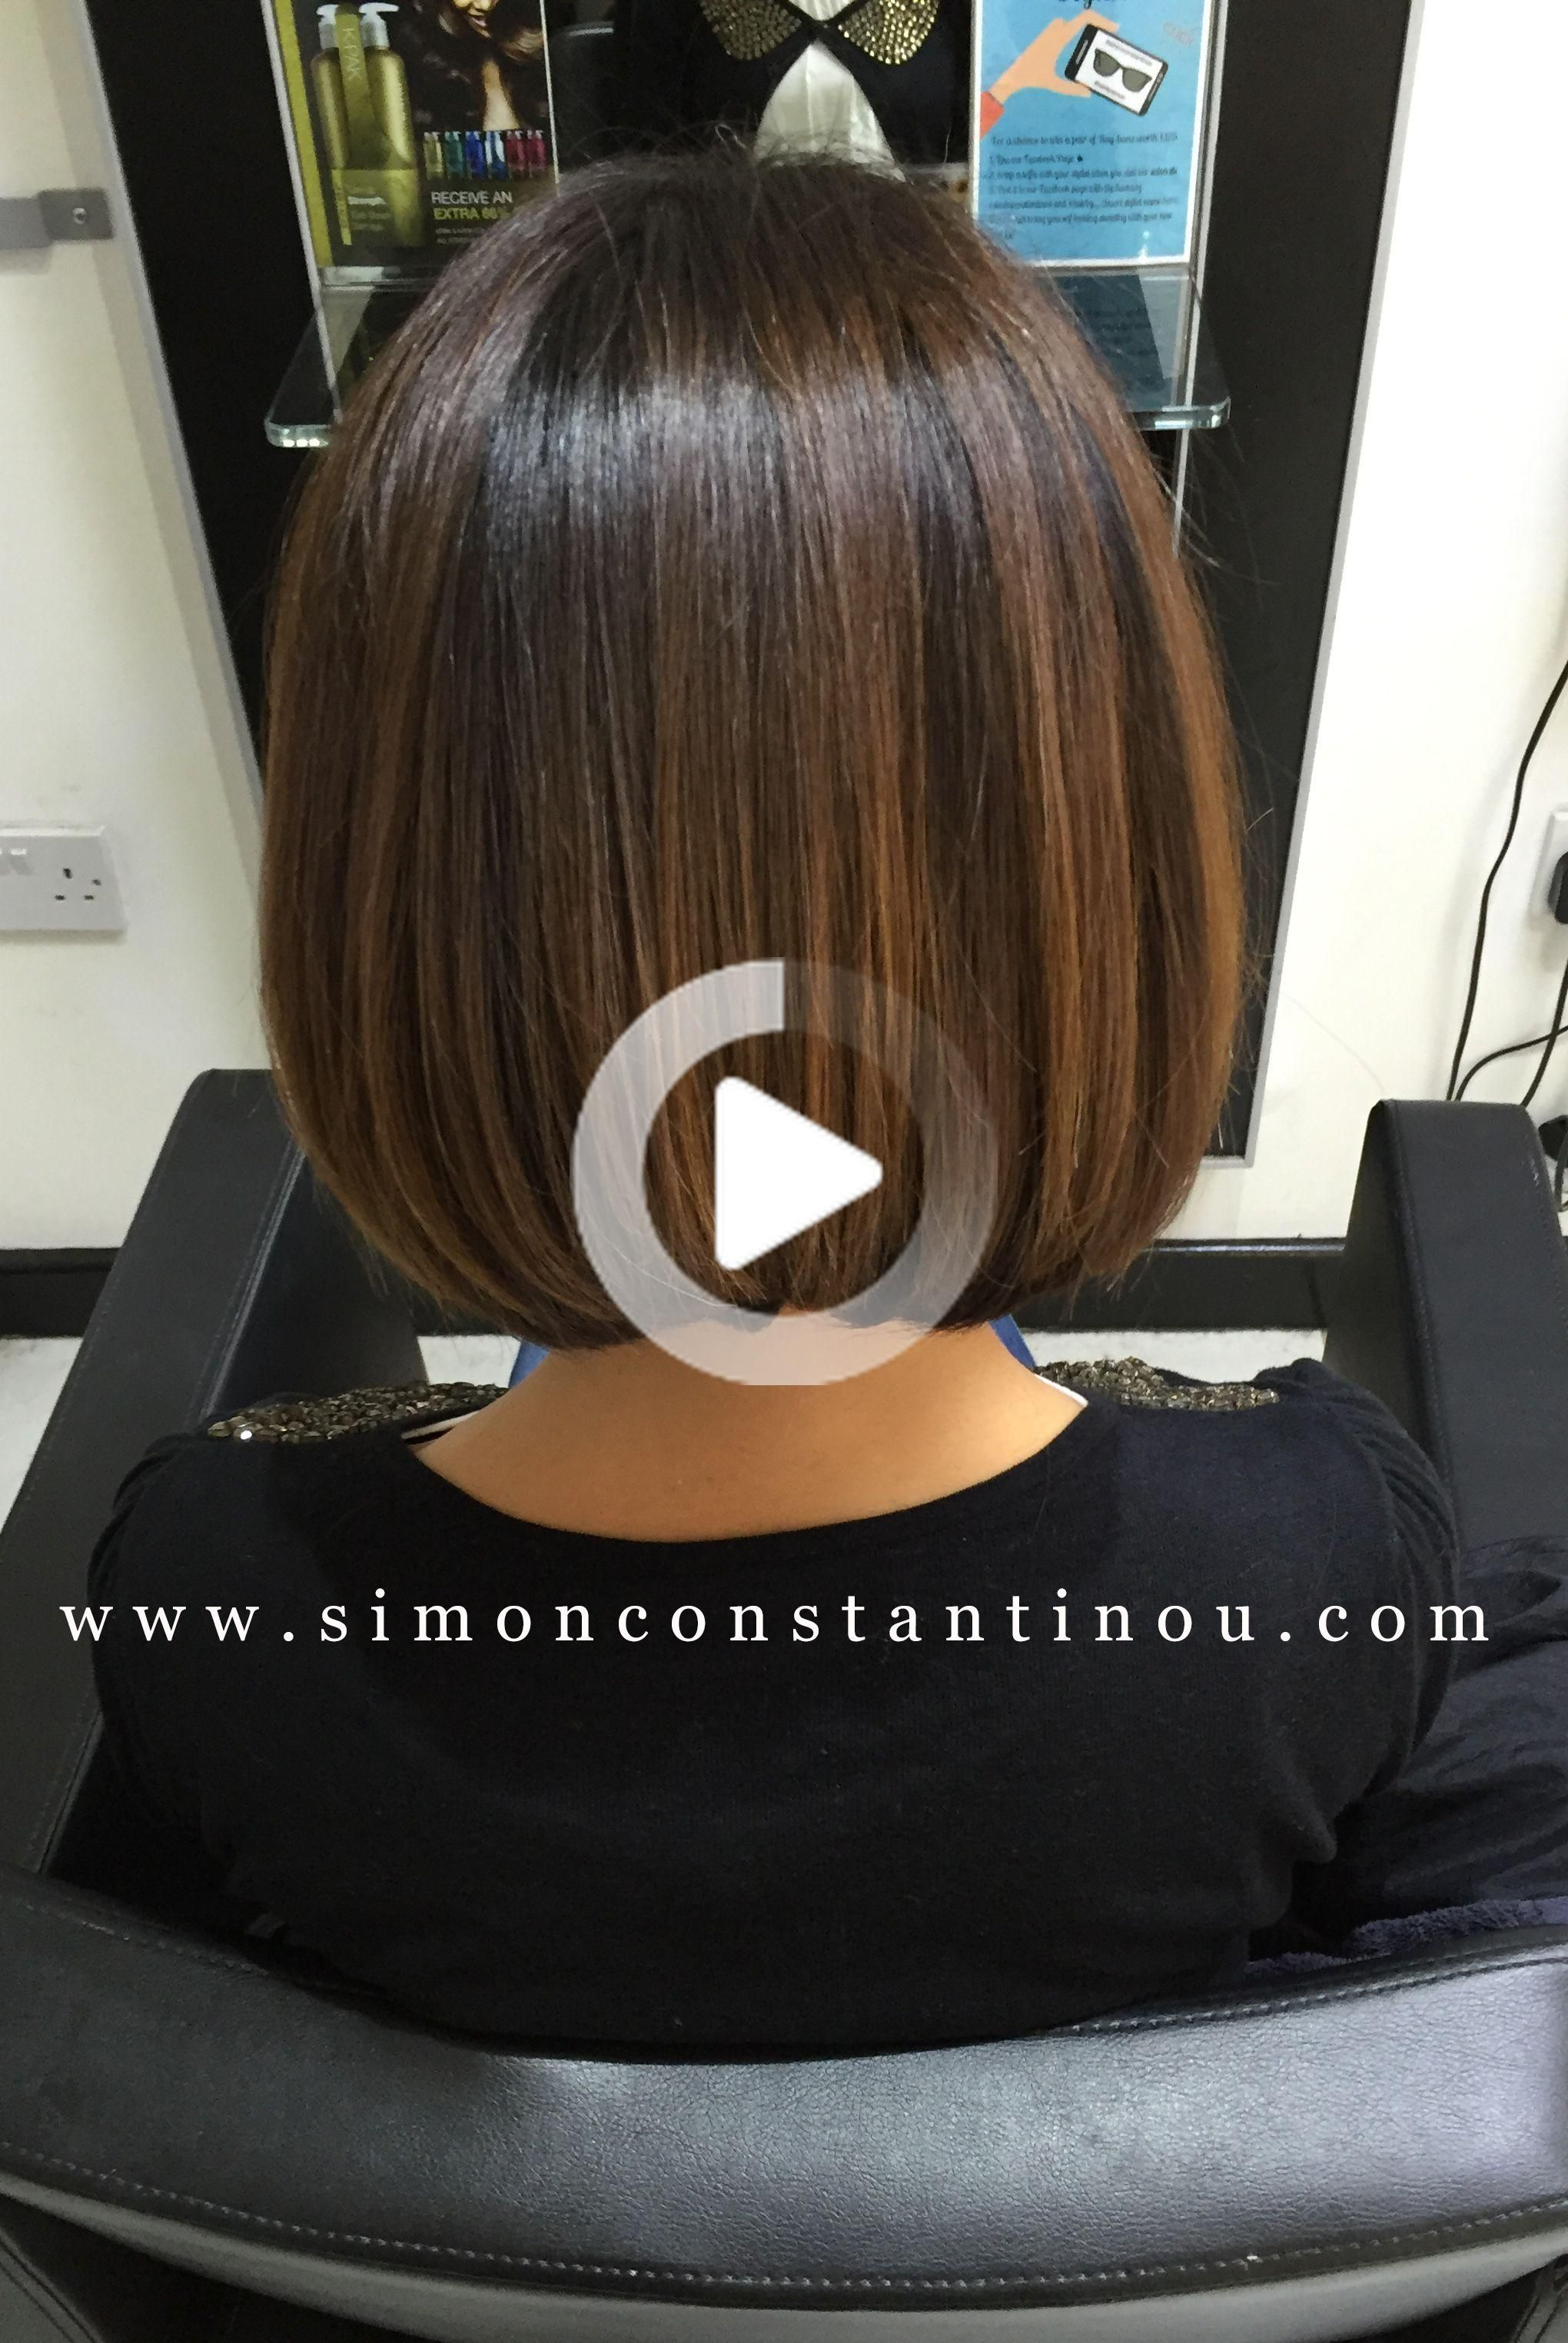 Simon Constantinou In 2020 Brunette Bob Long Layered Bob Hairstyles Thick Hair Styles